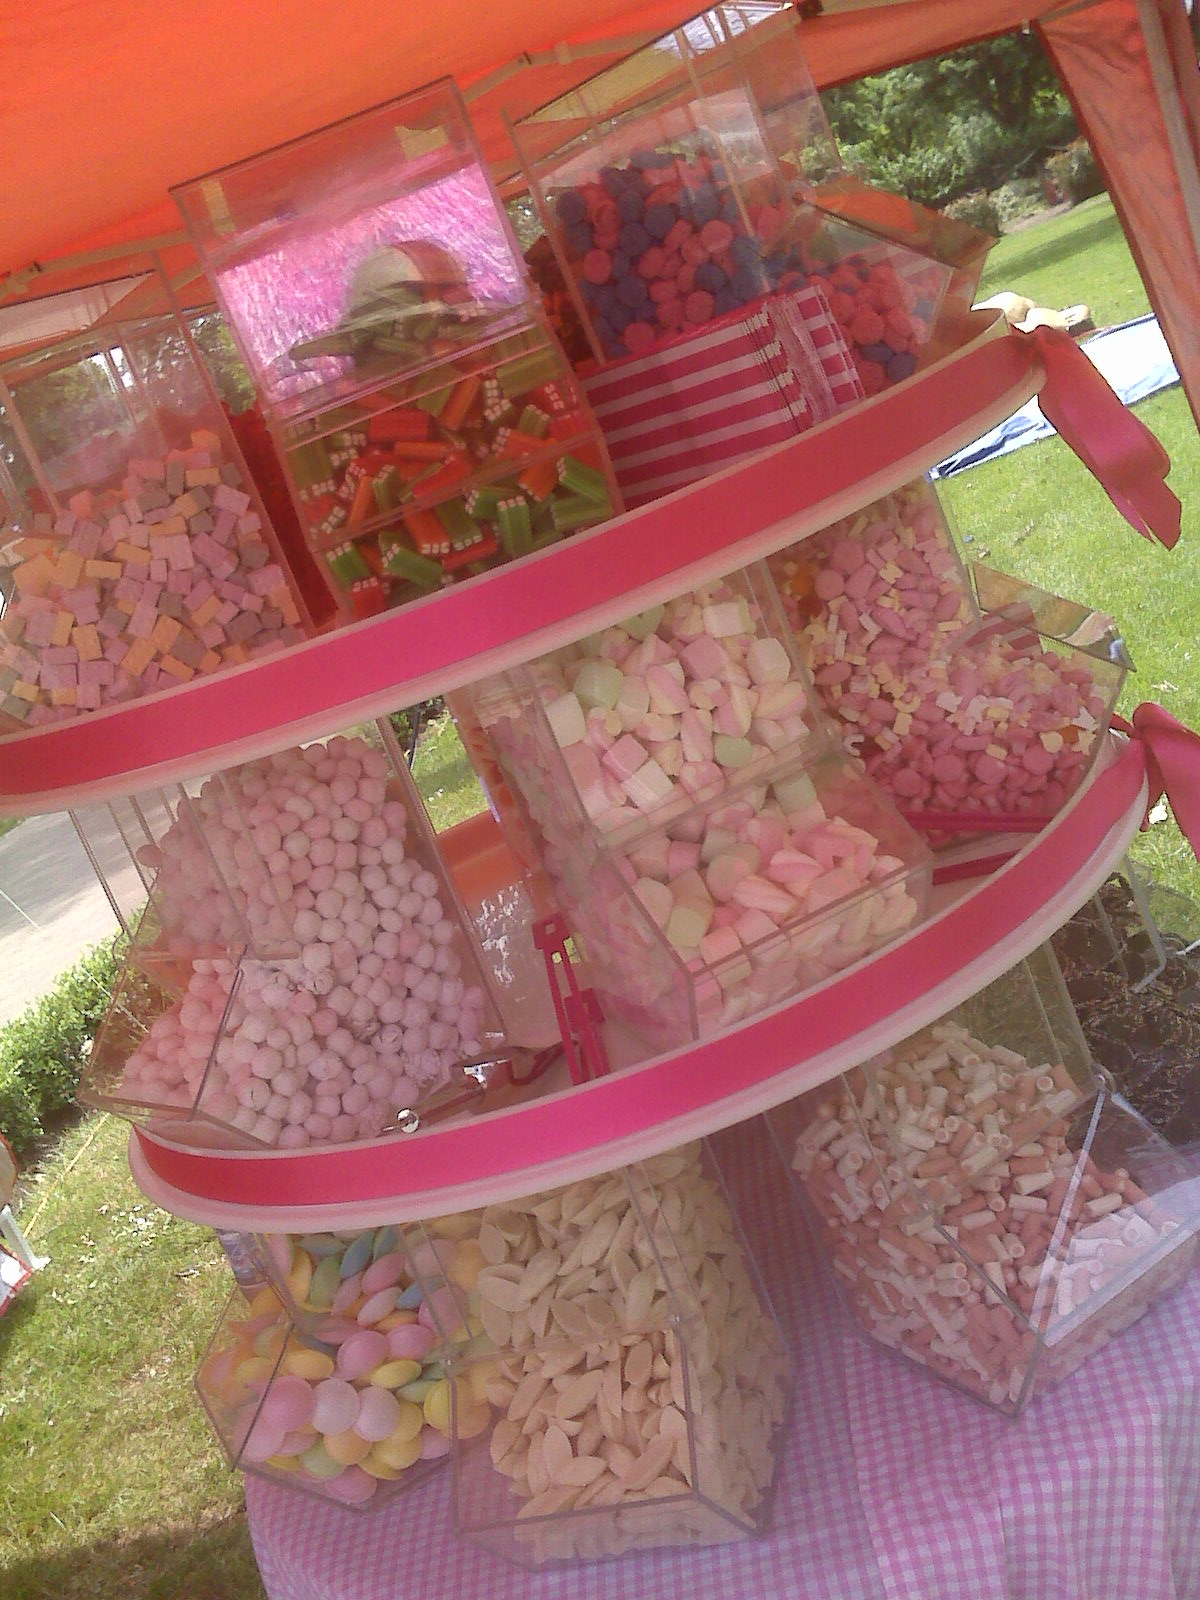 Pick and mix stand in pink